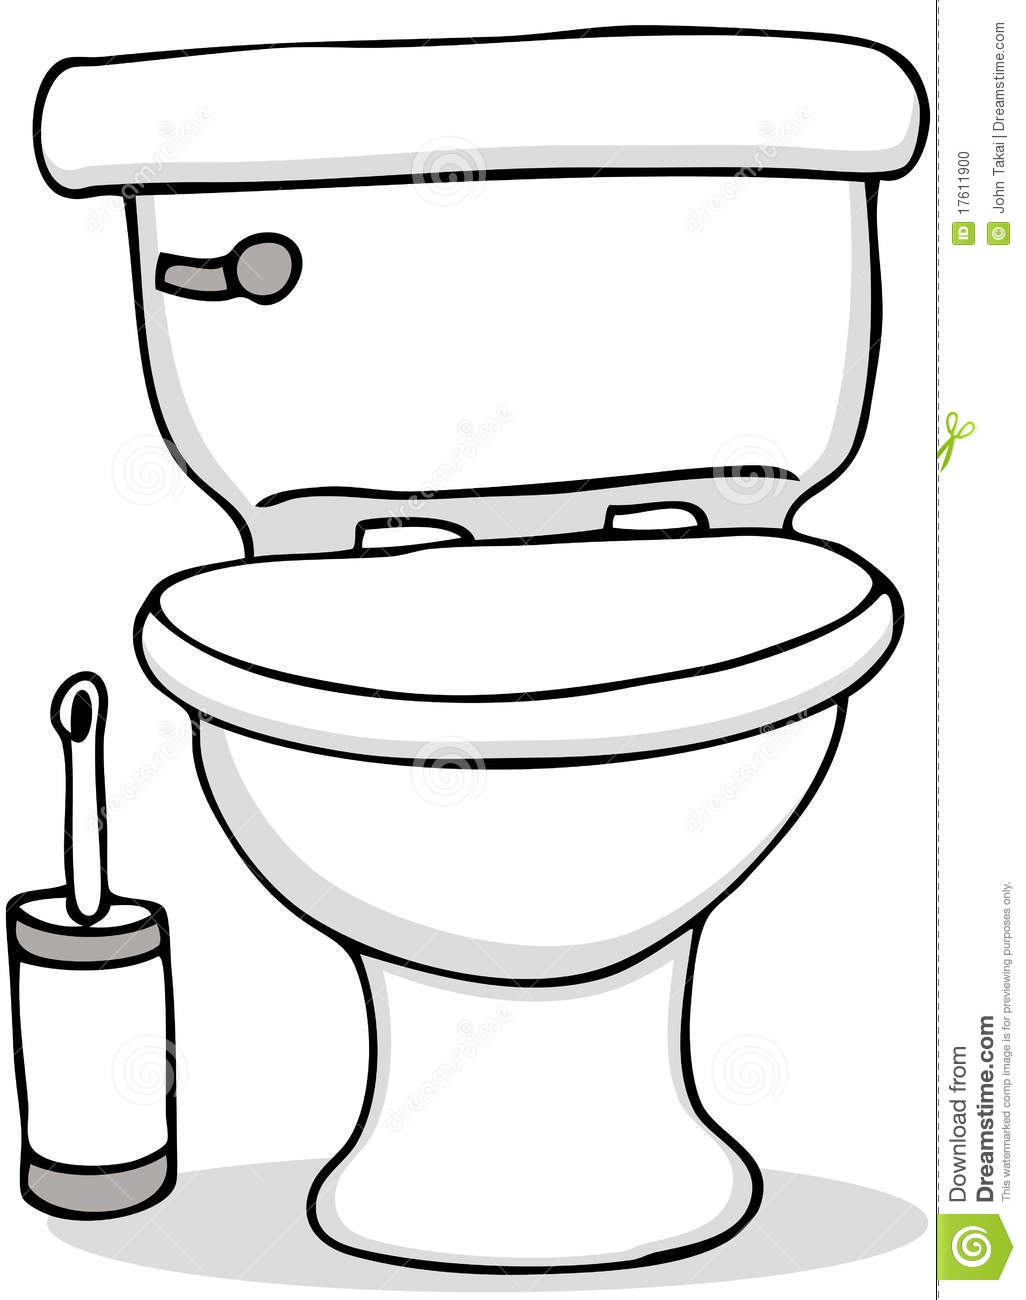 toilet and cleaning brush stock vector image of doodle